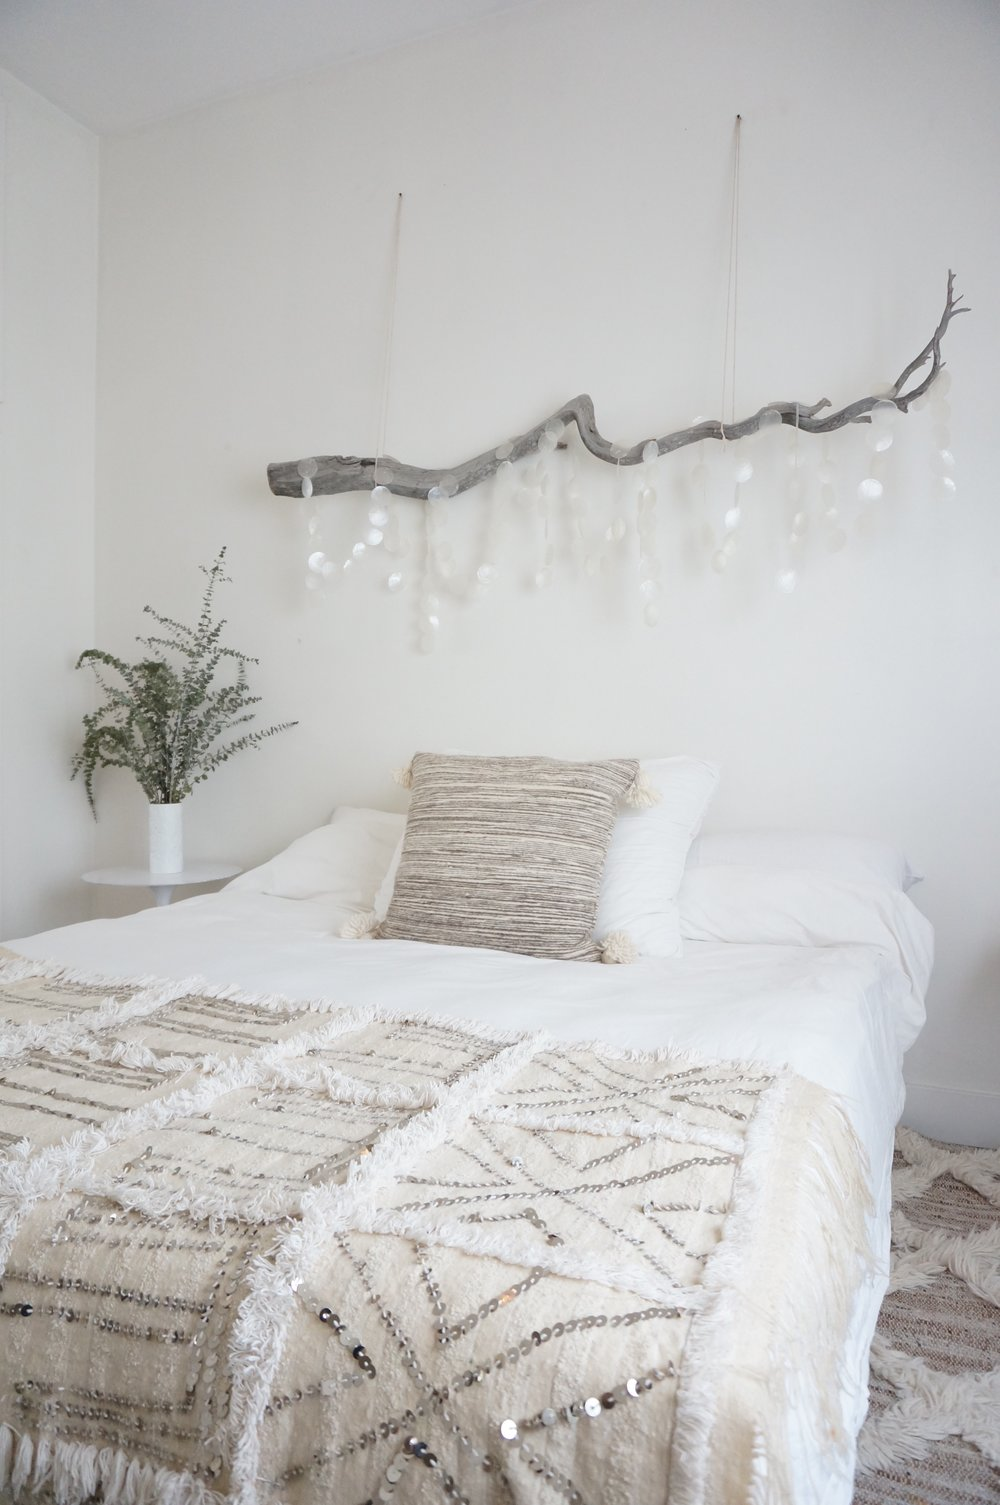 Above: My friend and neighbor Heather Tierney used a dried branch above her bed in lieu of a headboard or framed art. The draped capiz shells catch and reflect the sunlight in this Venice home.